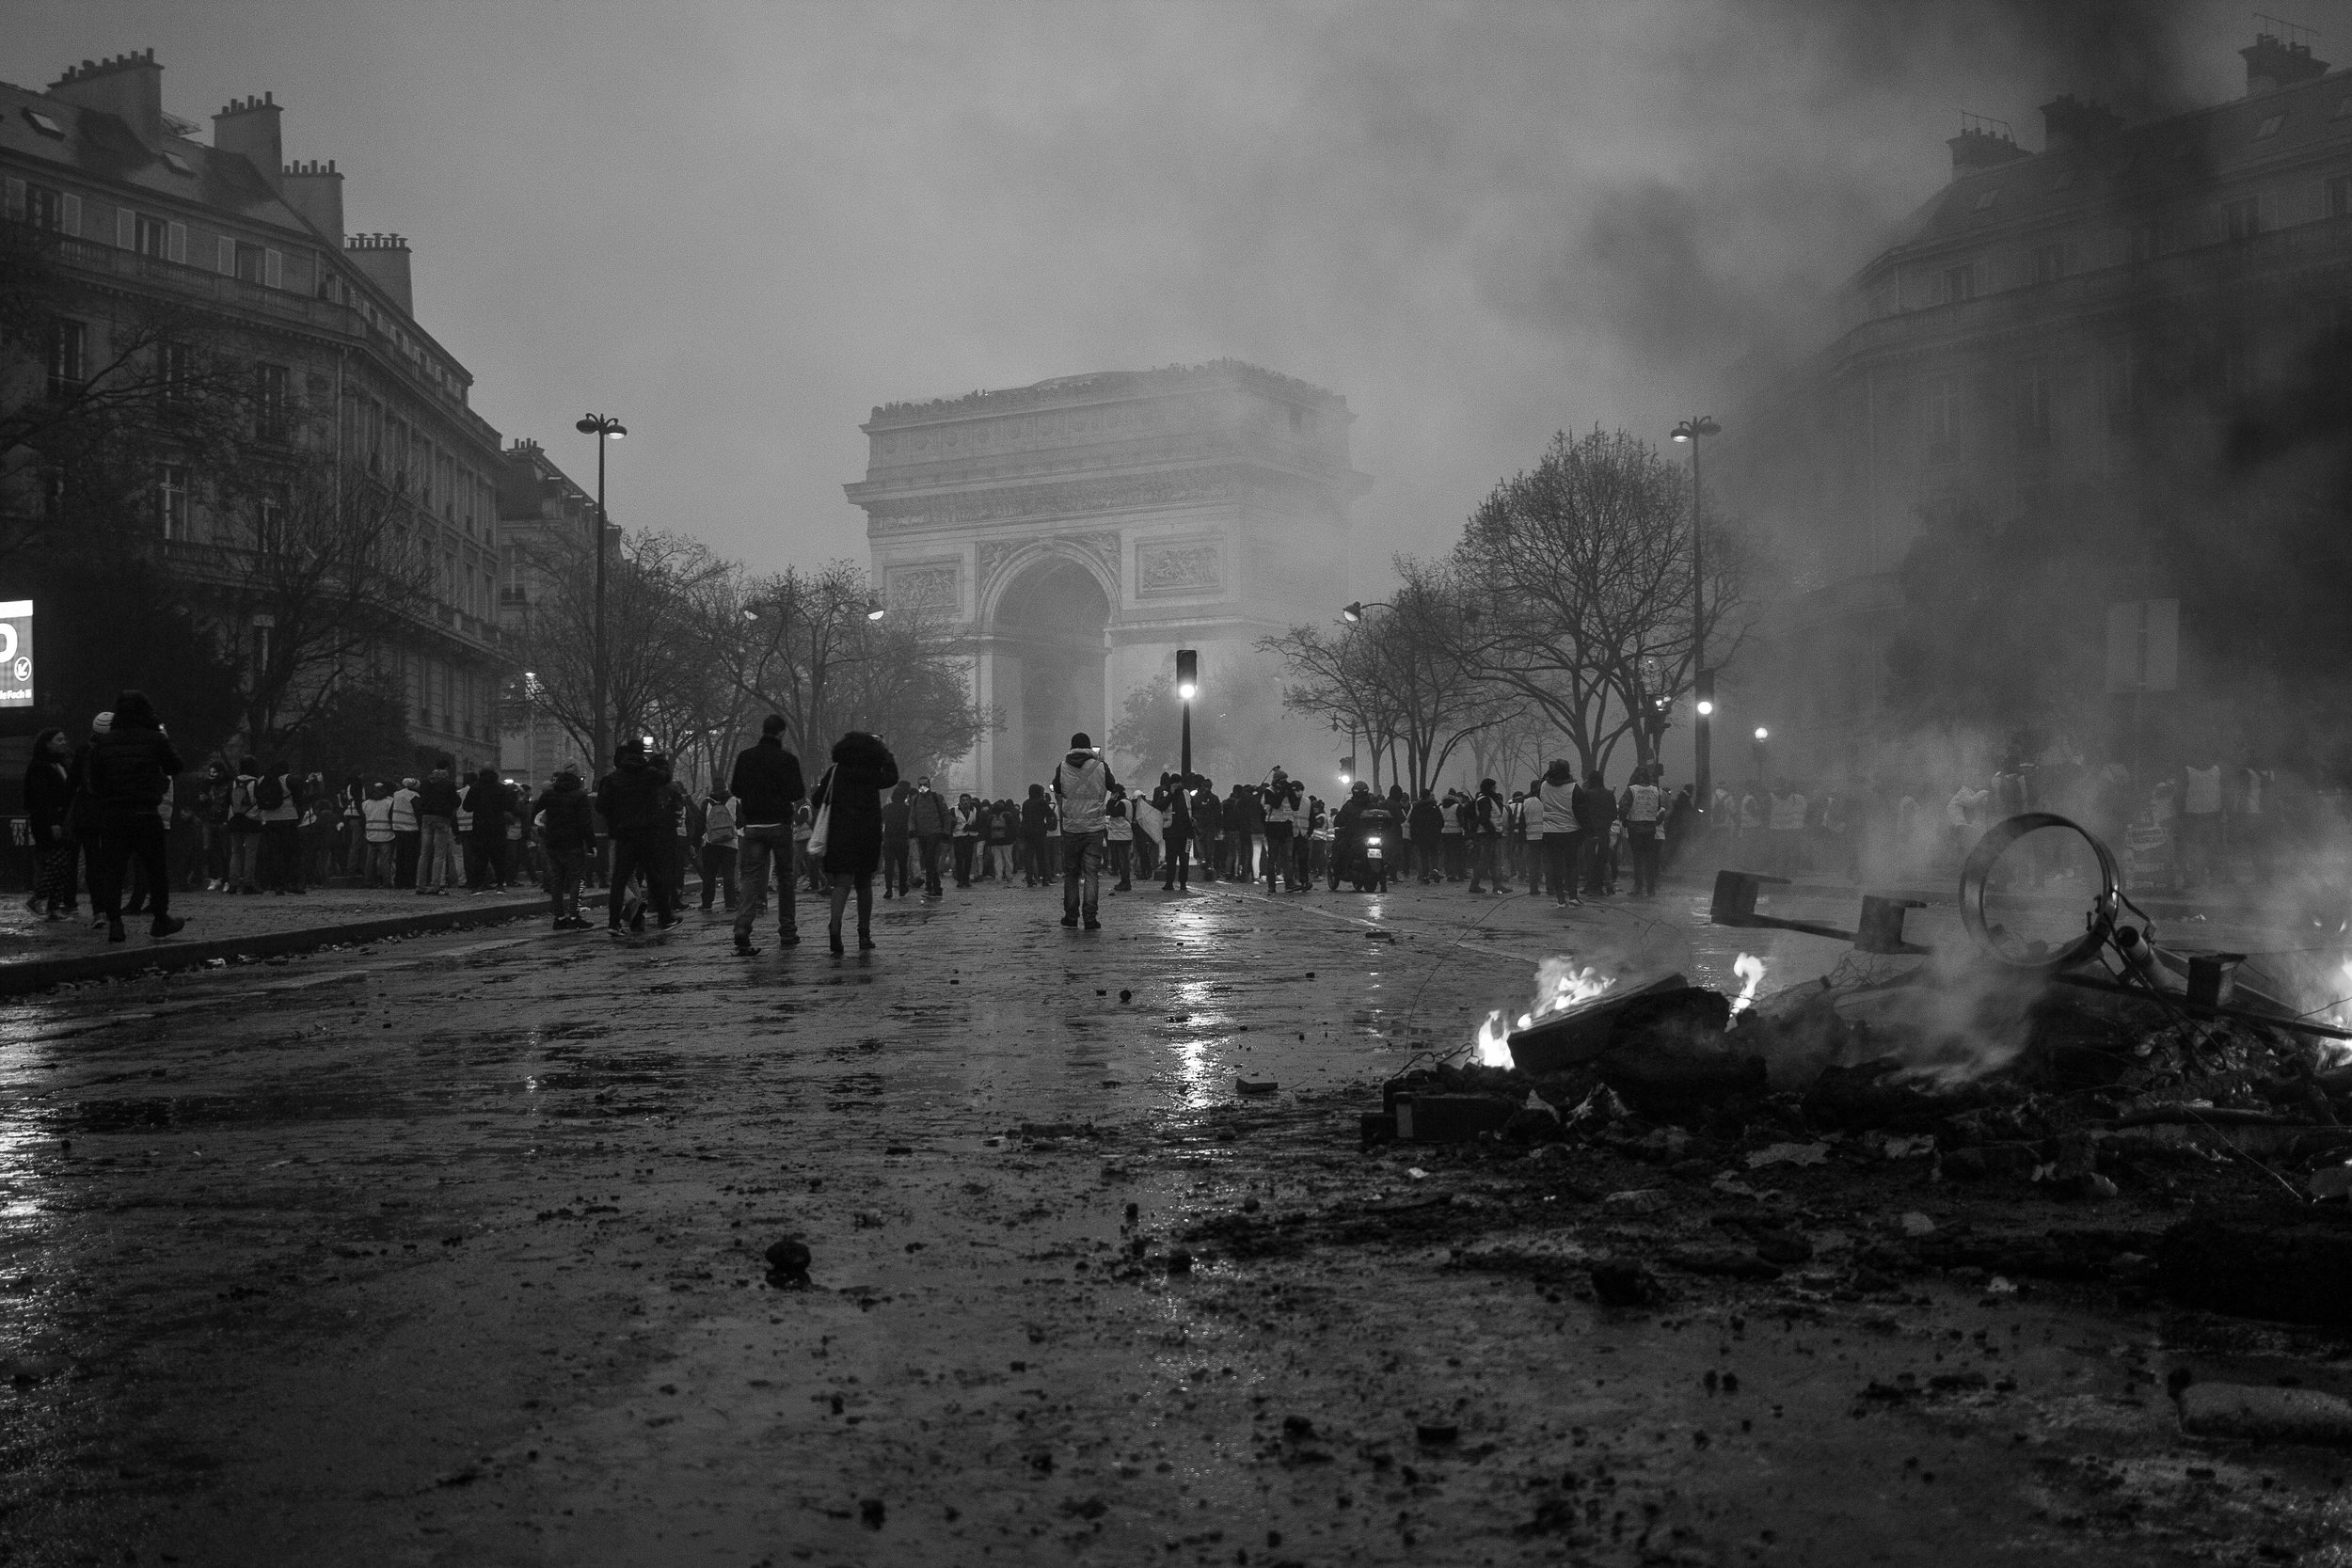 Protesters and rioters demonstrate among burning wreckage near the Arc de Triomphe. (flickr)